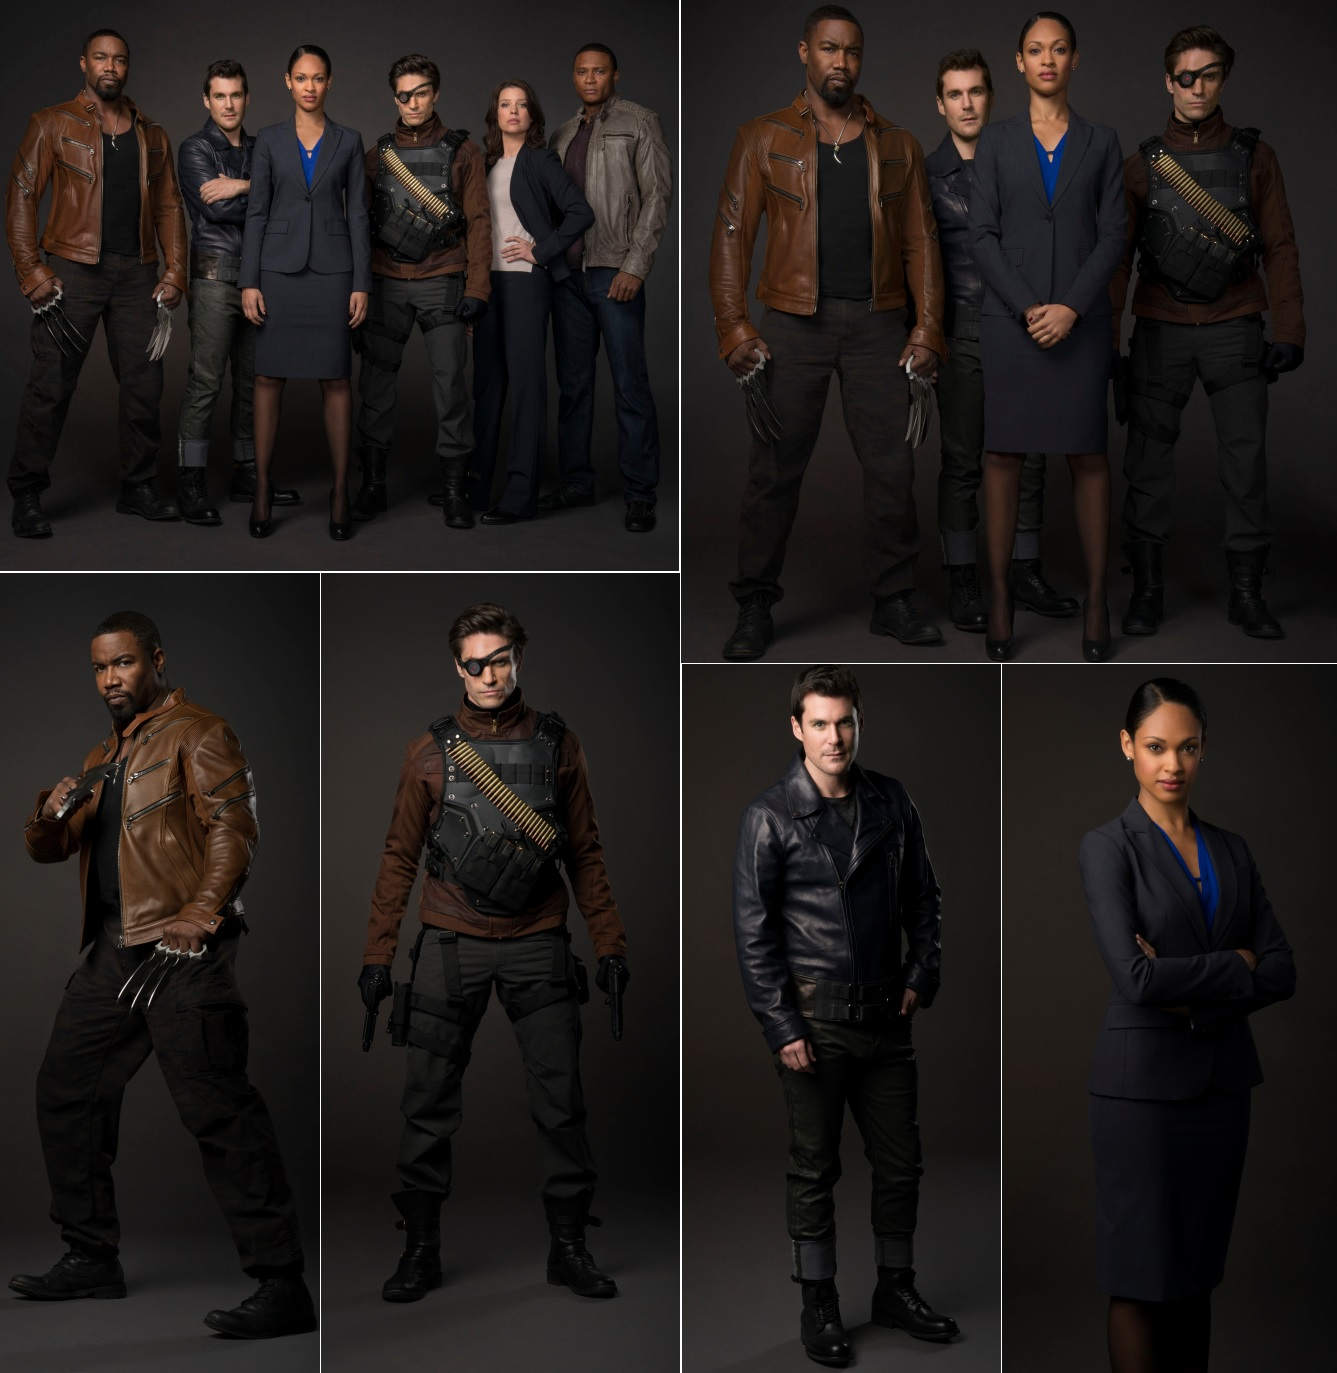 To be fair, if WB wanted to use the Suicide Squad again in the DCTV universe, it wouldn't be this exact group again due to events in the last two seasons of Arrow.